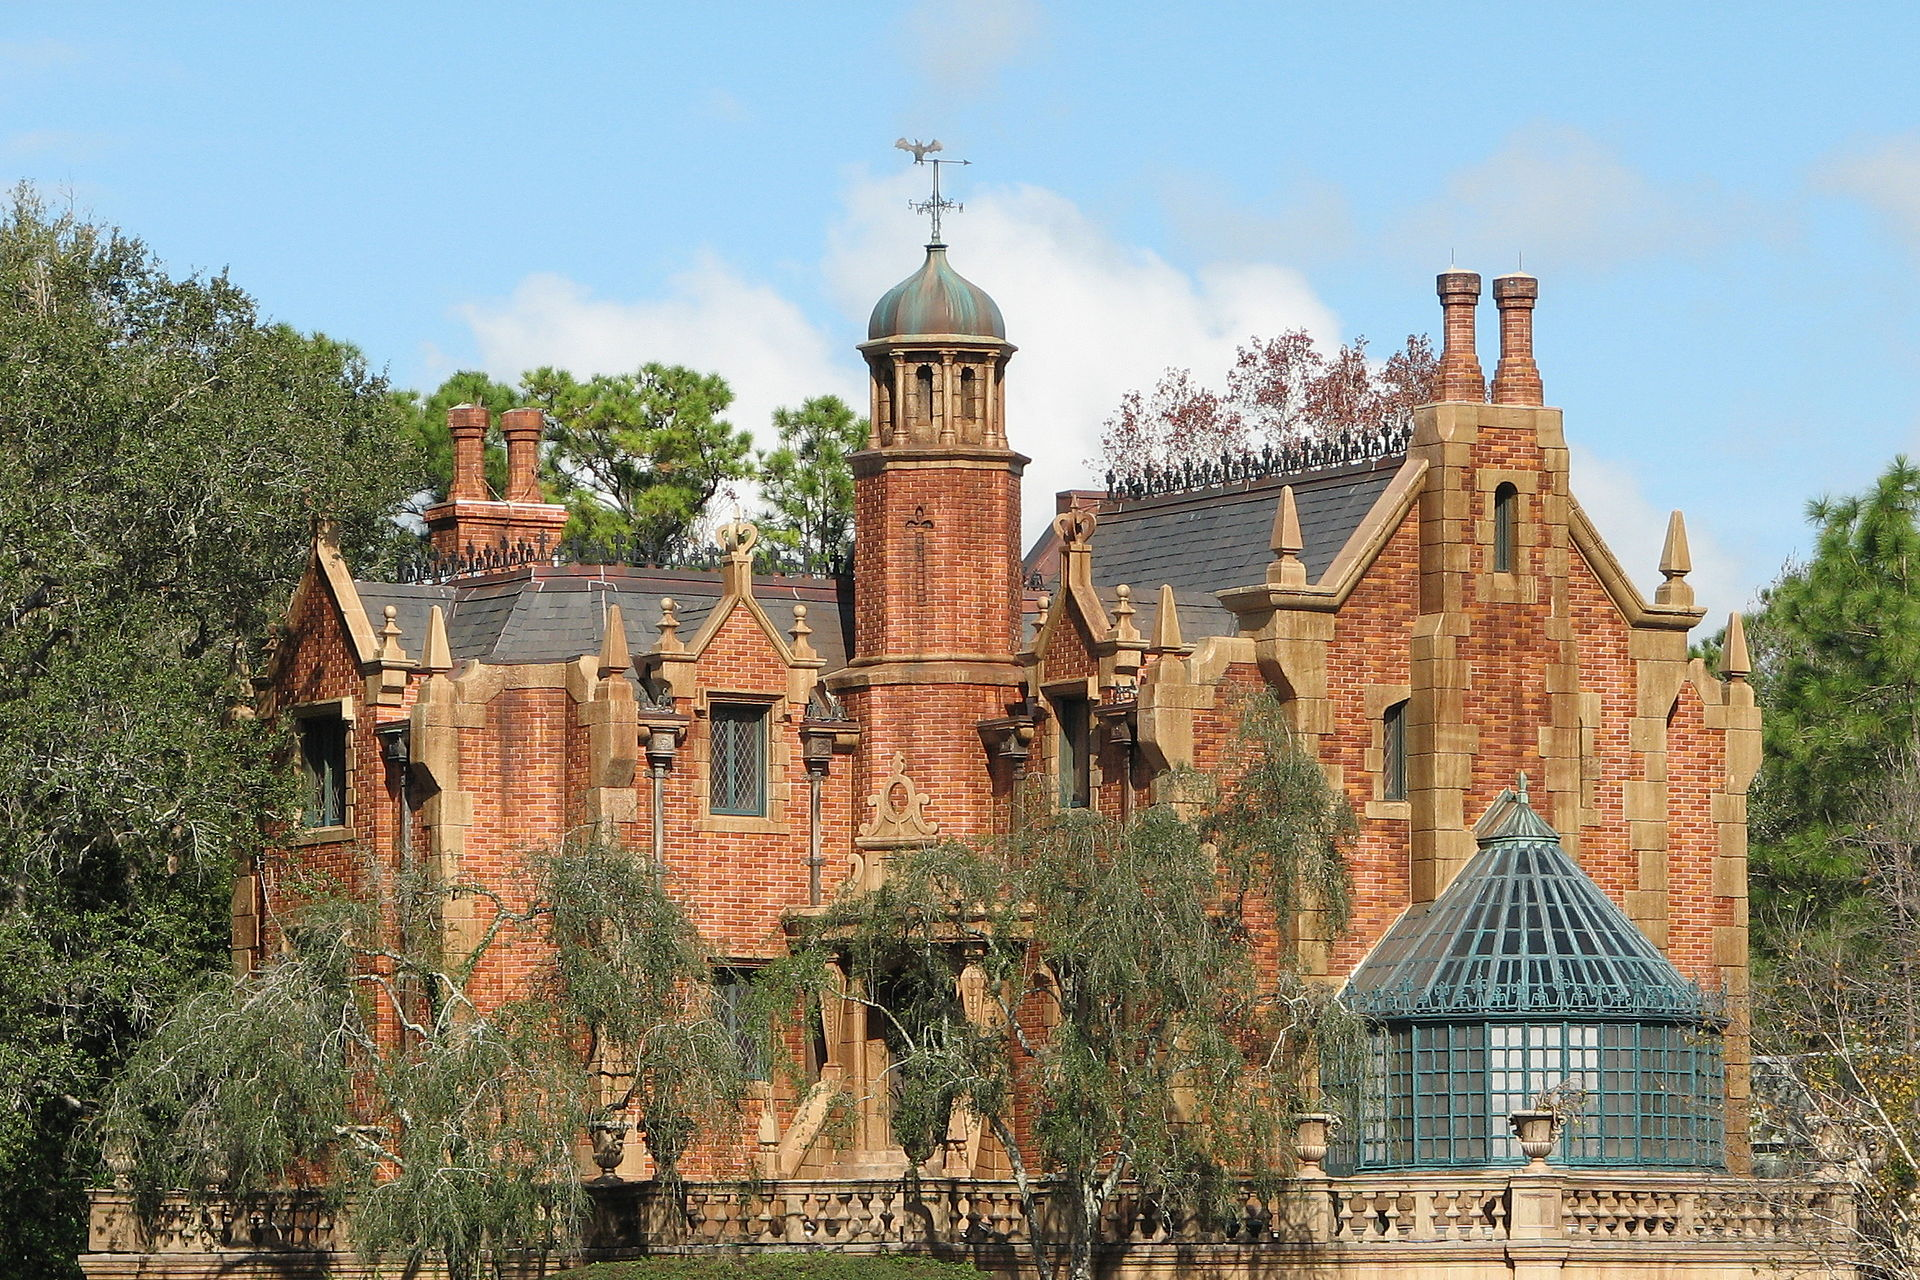 The Haunted Mansion exterior